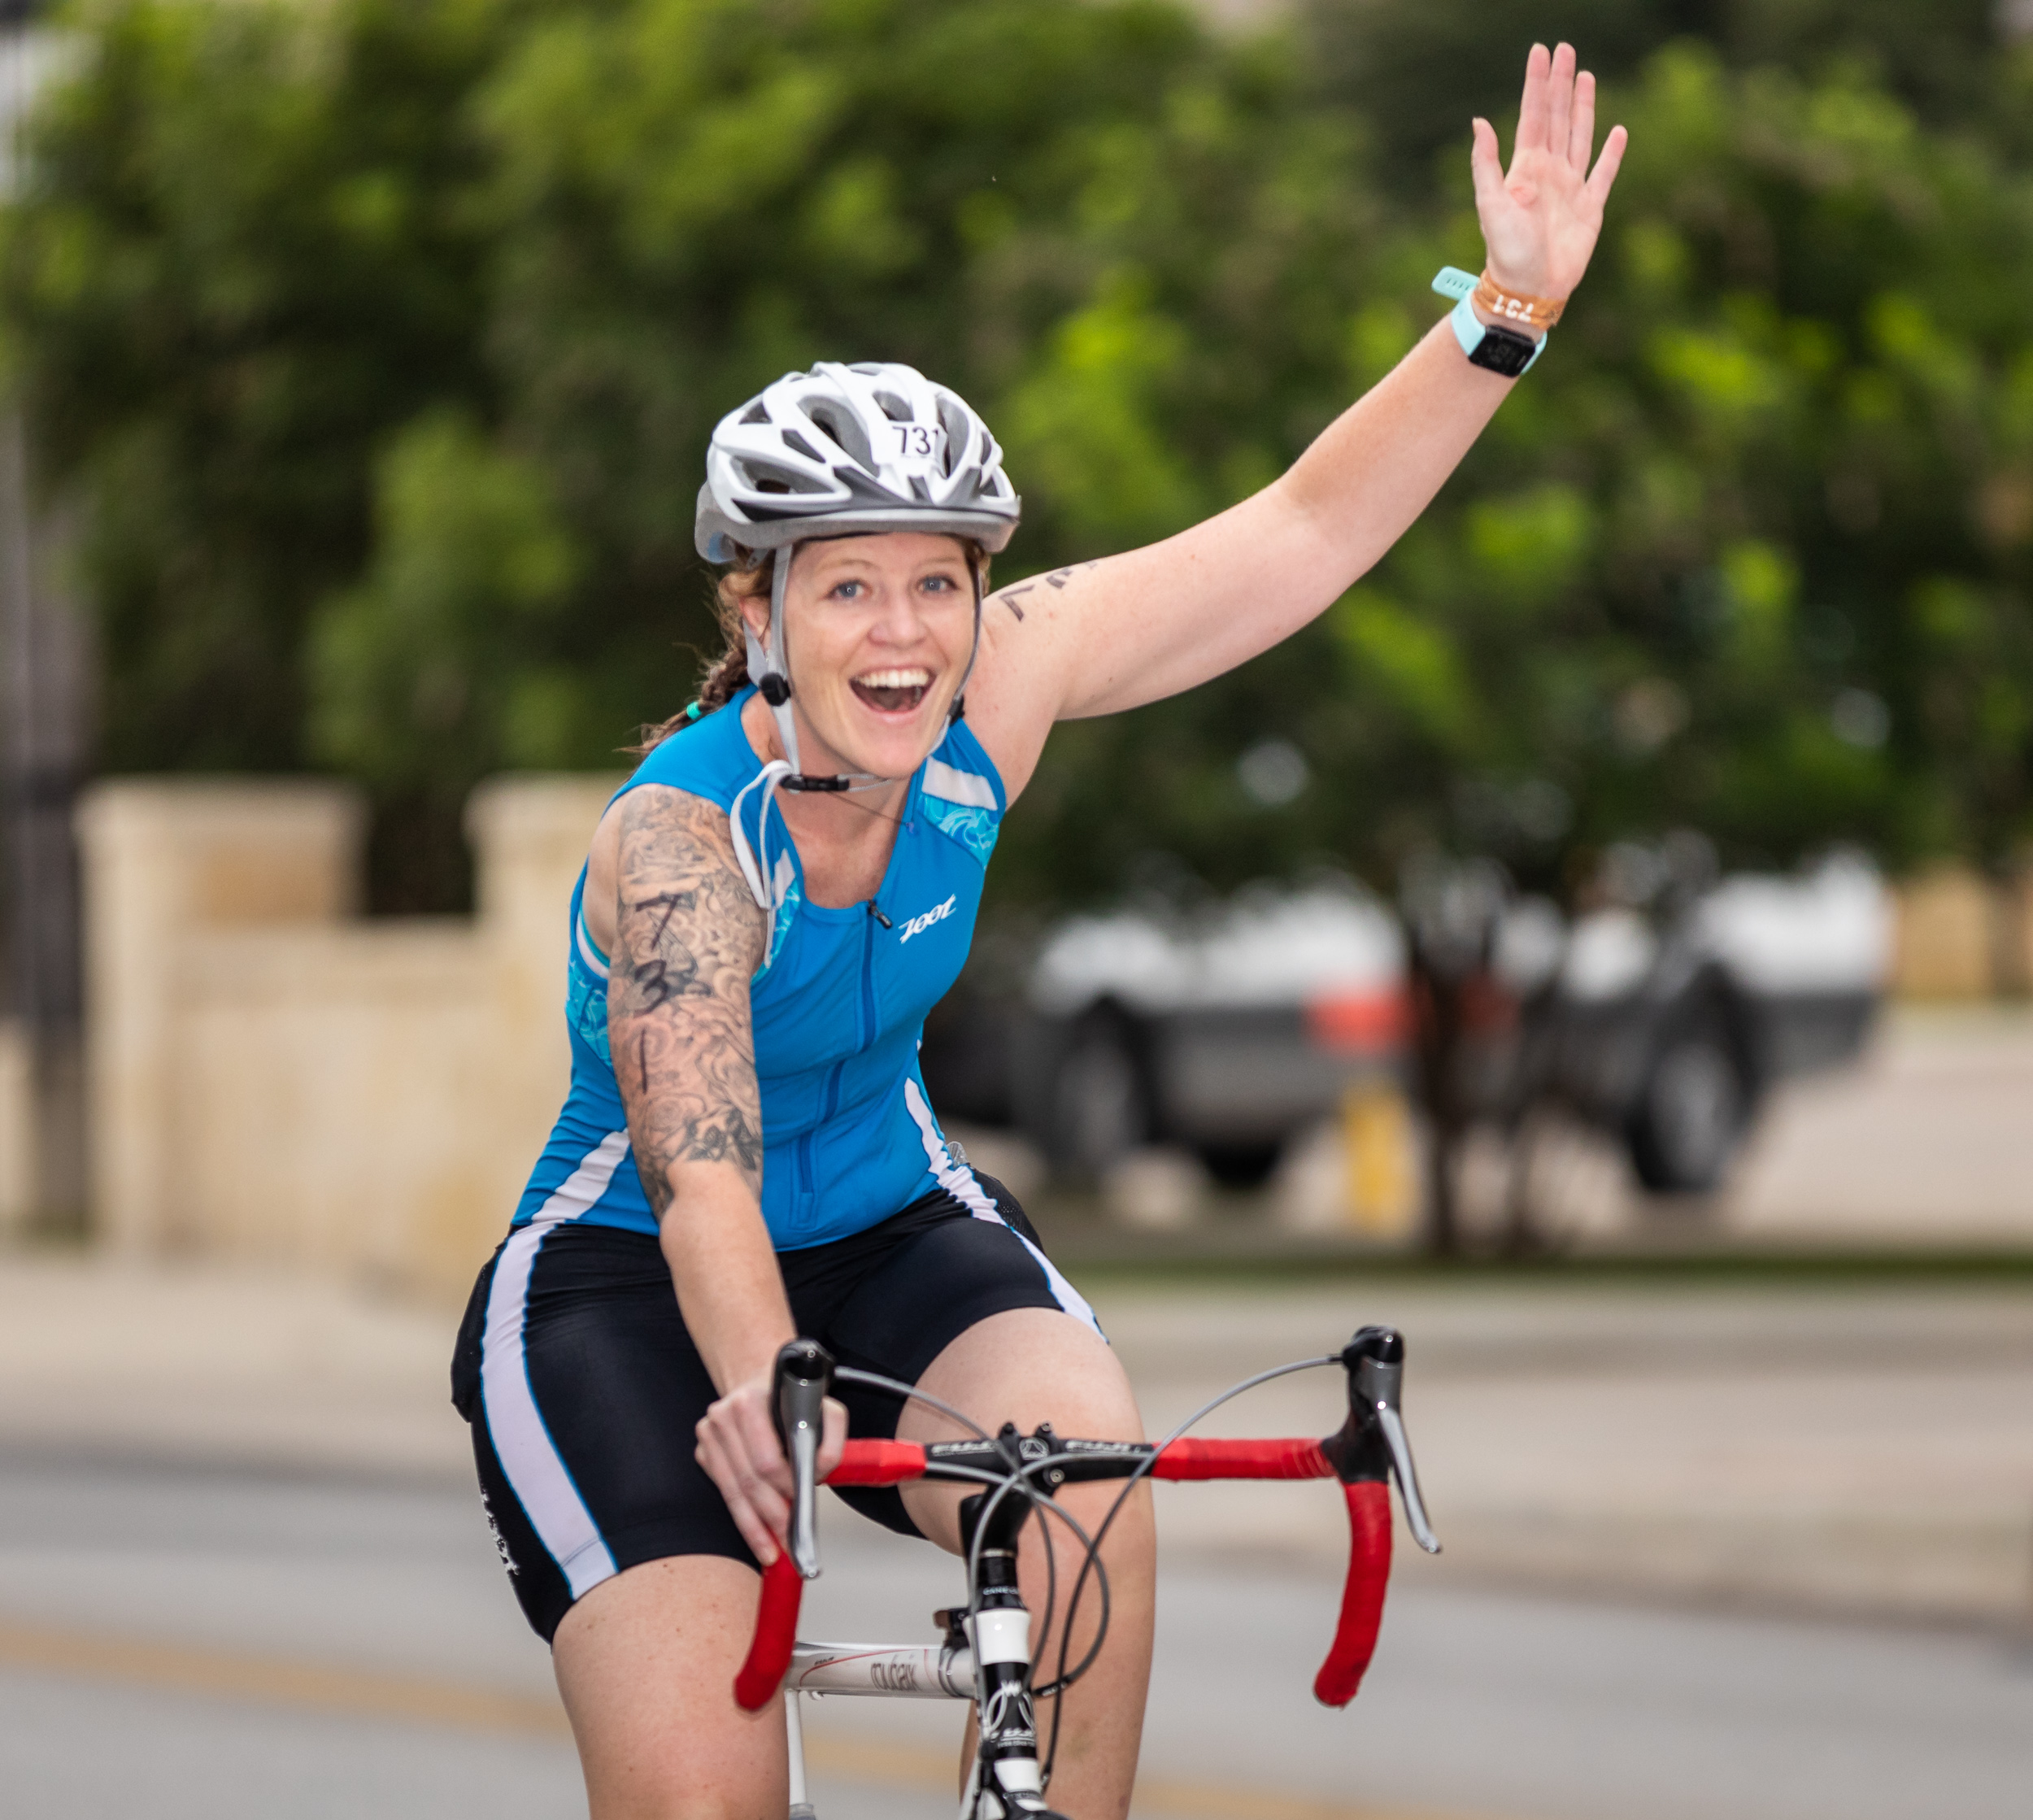 Cycling in the offseason can improve your cardiovascular system.